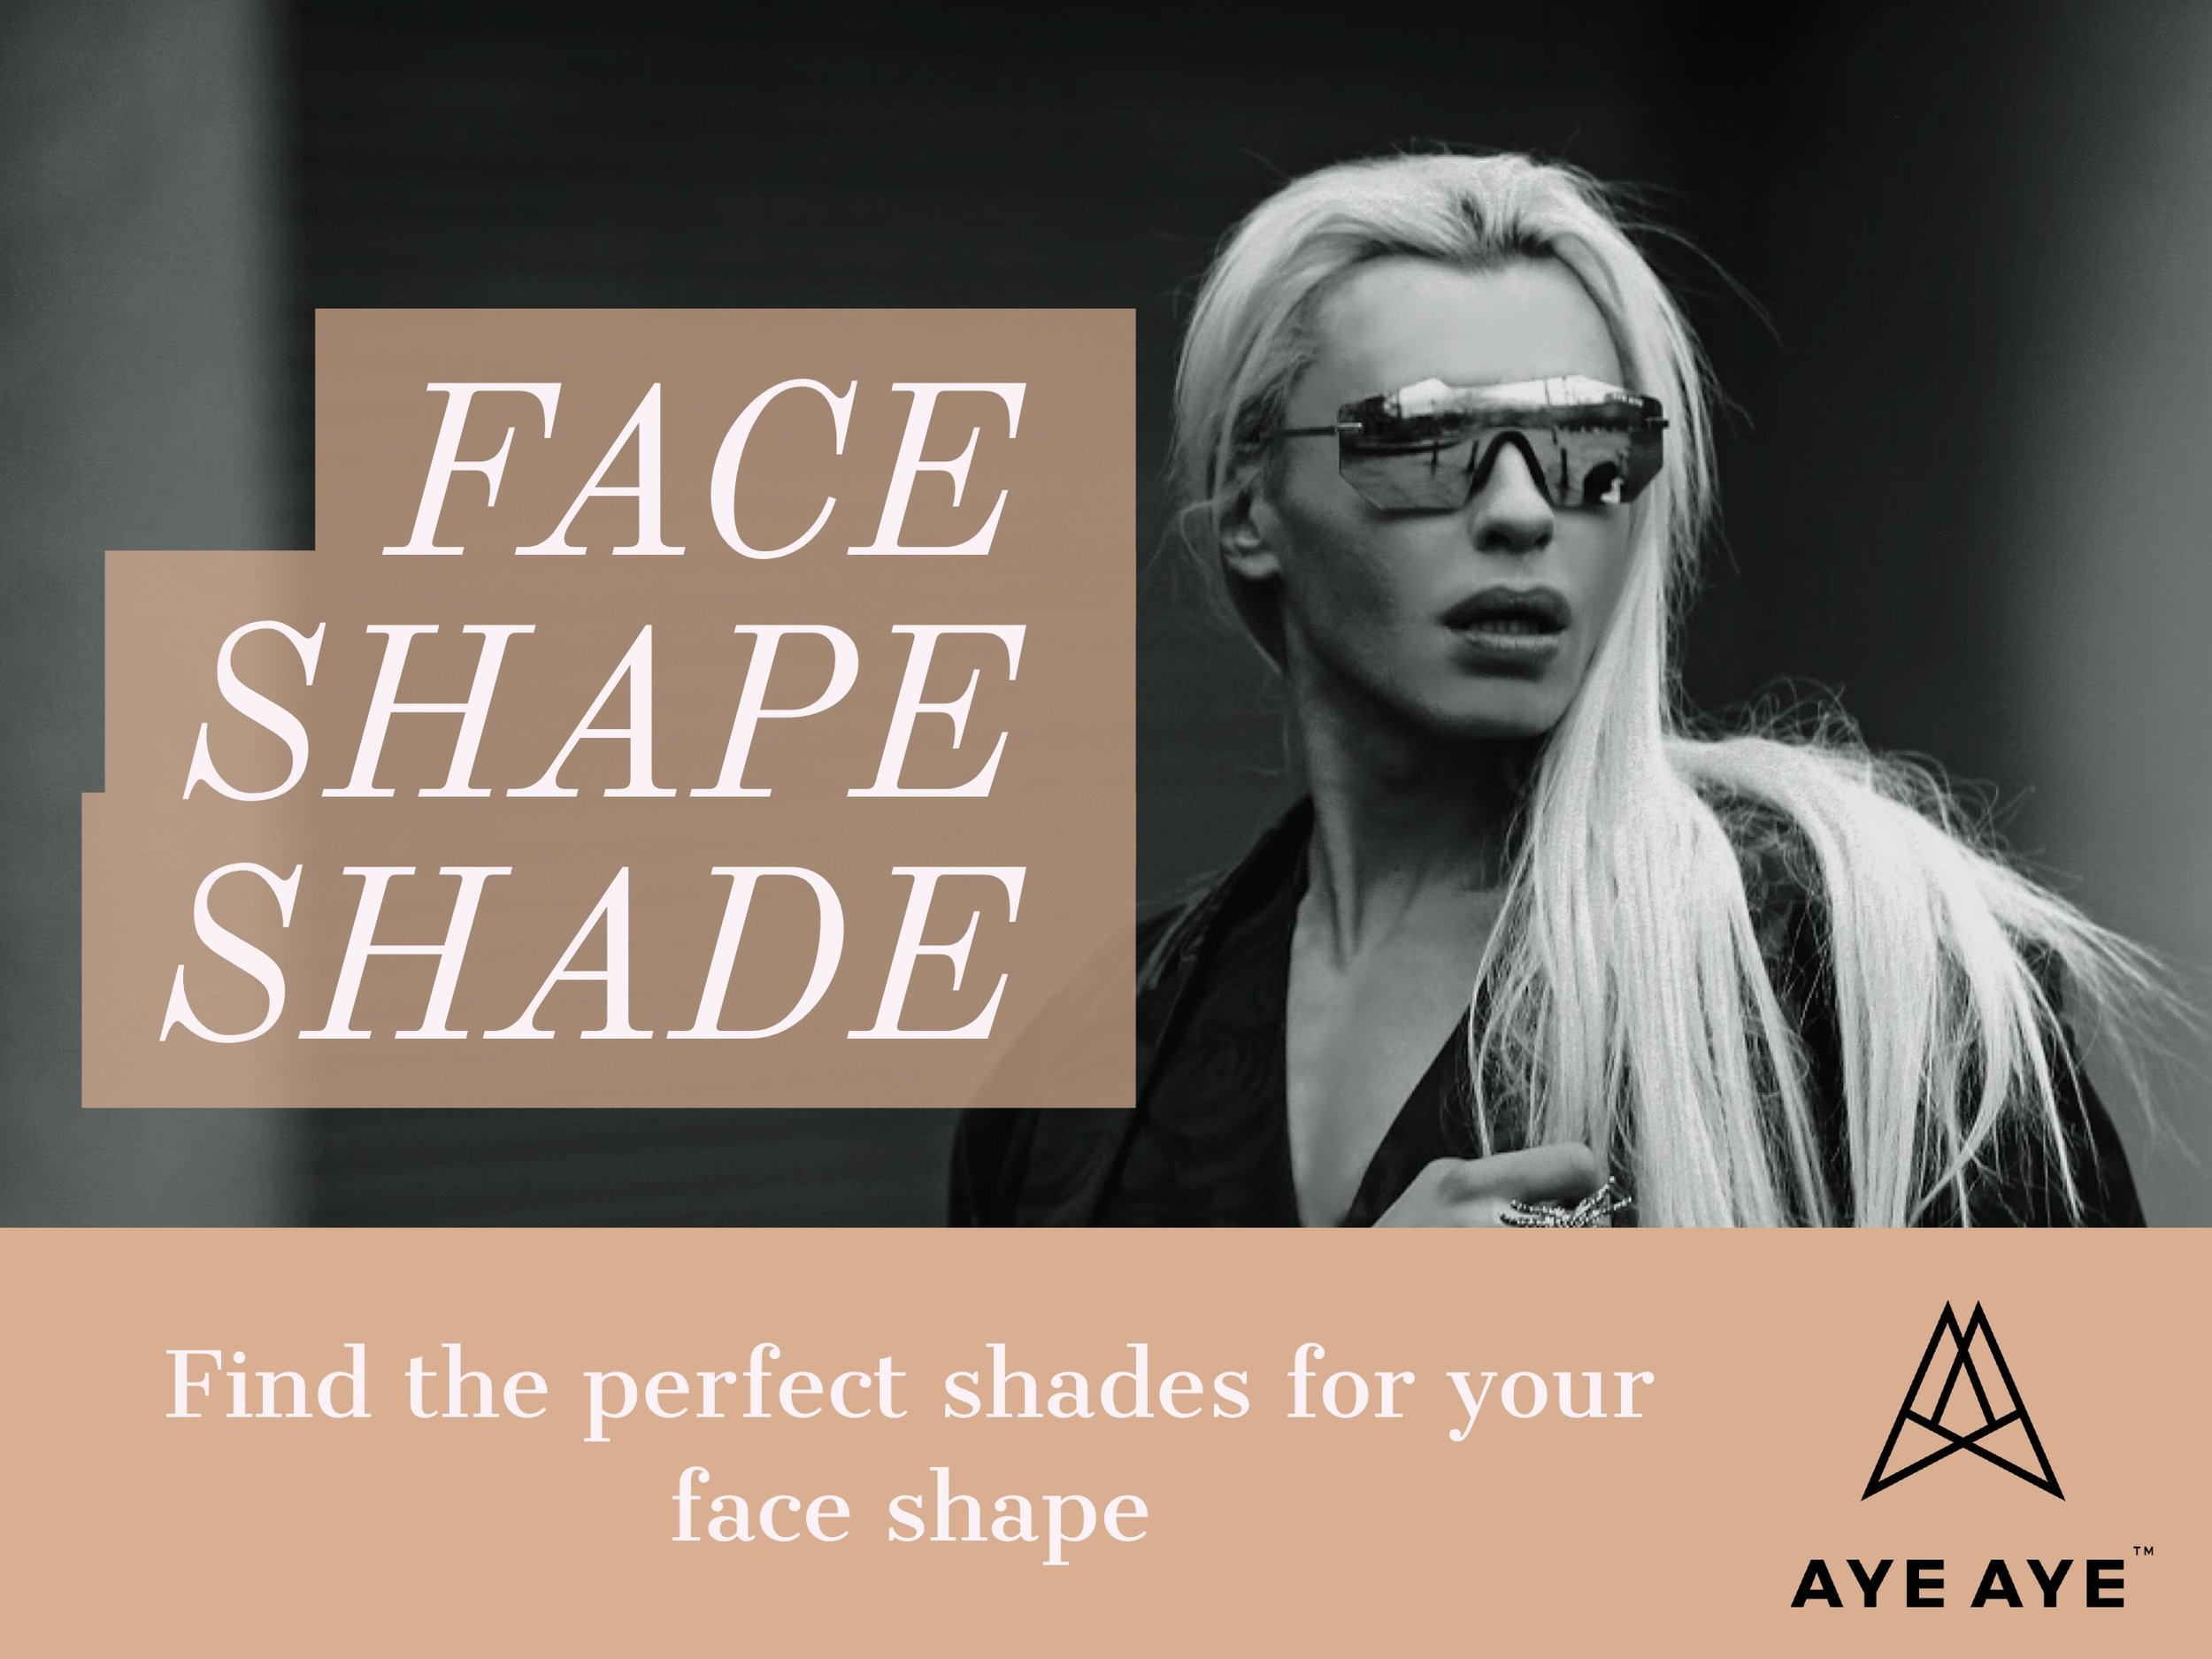 What's your Face Shape Shade - Find out below